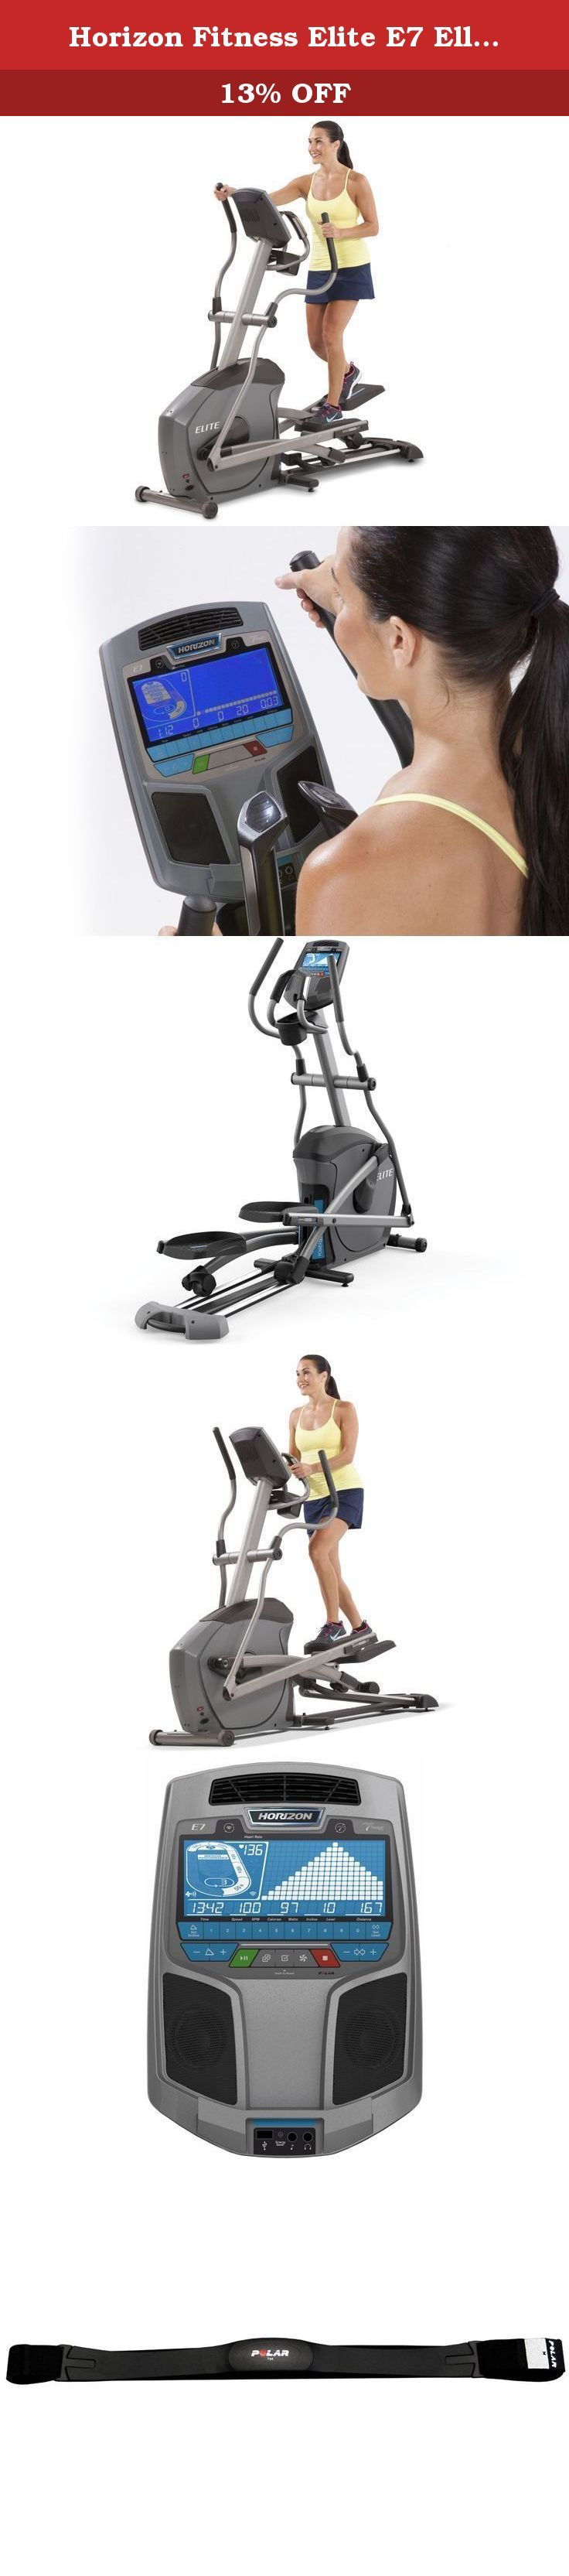 Horizon Fitness Elite E7 Elliptical Trainer. The Horizon Fitness Elite E7 is one of the best moves you can make when you're ready for more advanced training. Power incline adds challenge at the touch of a button, and Polar heart rate monitoring makes it easy to stay in your target zone.